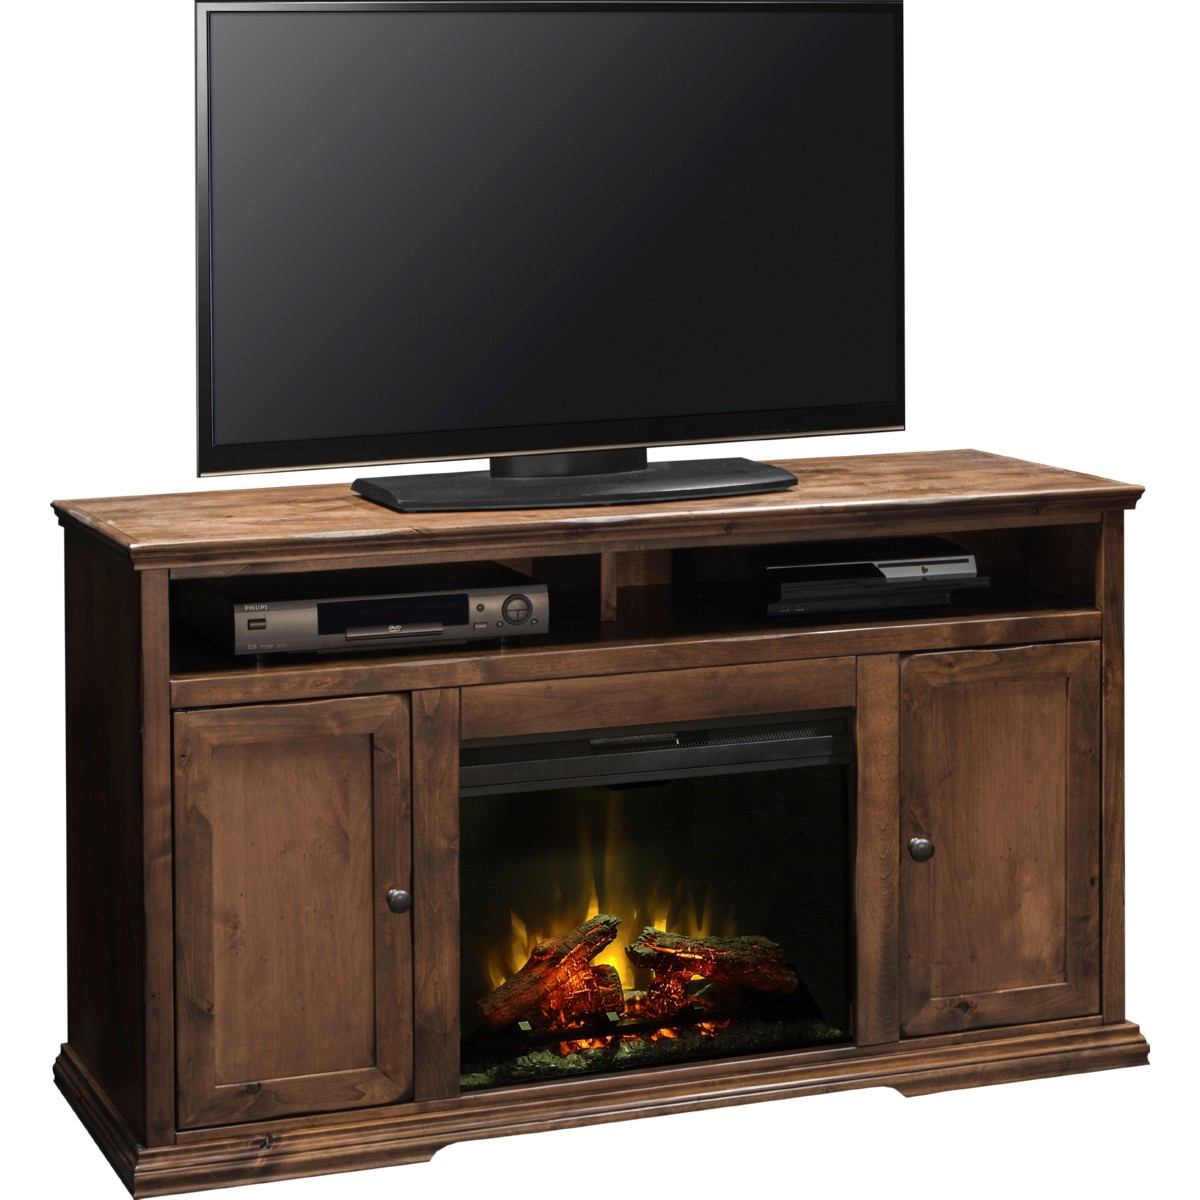 Bozeman 59 Fireplace Console In Distressed Aged Whiskey Finish By